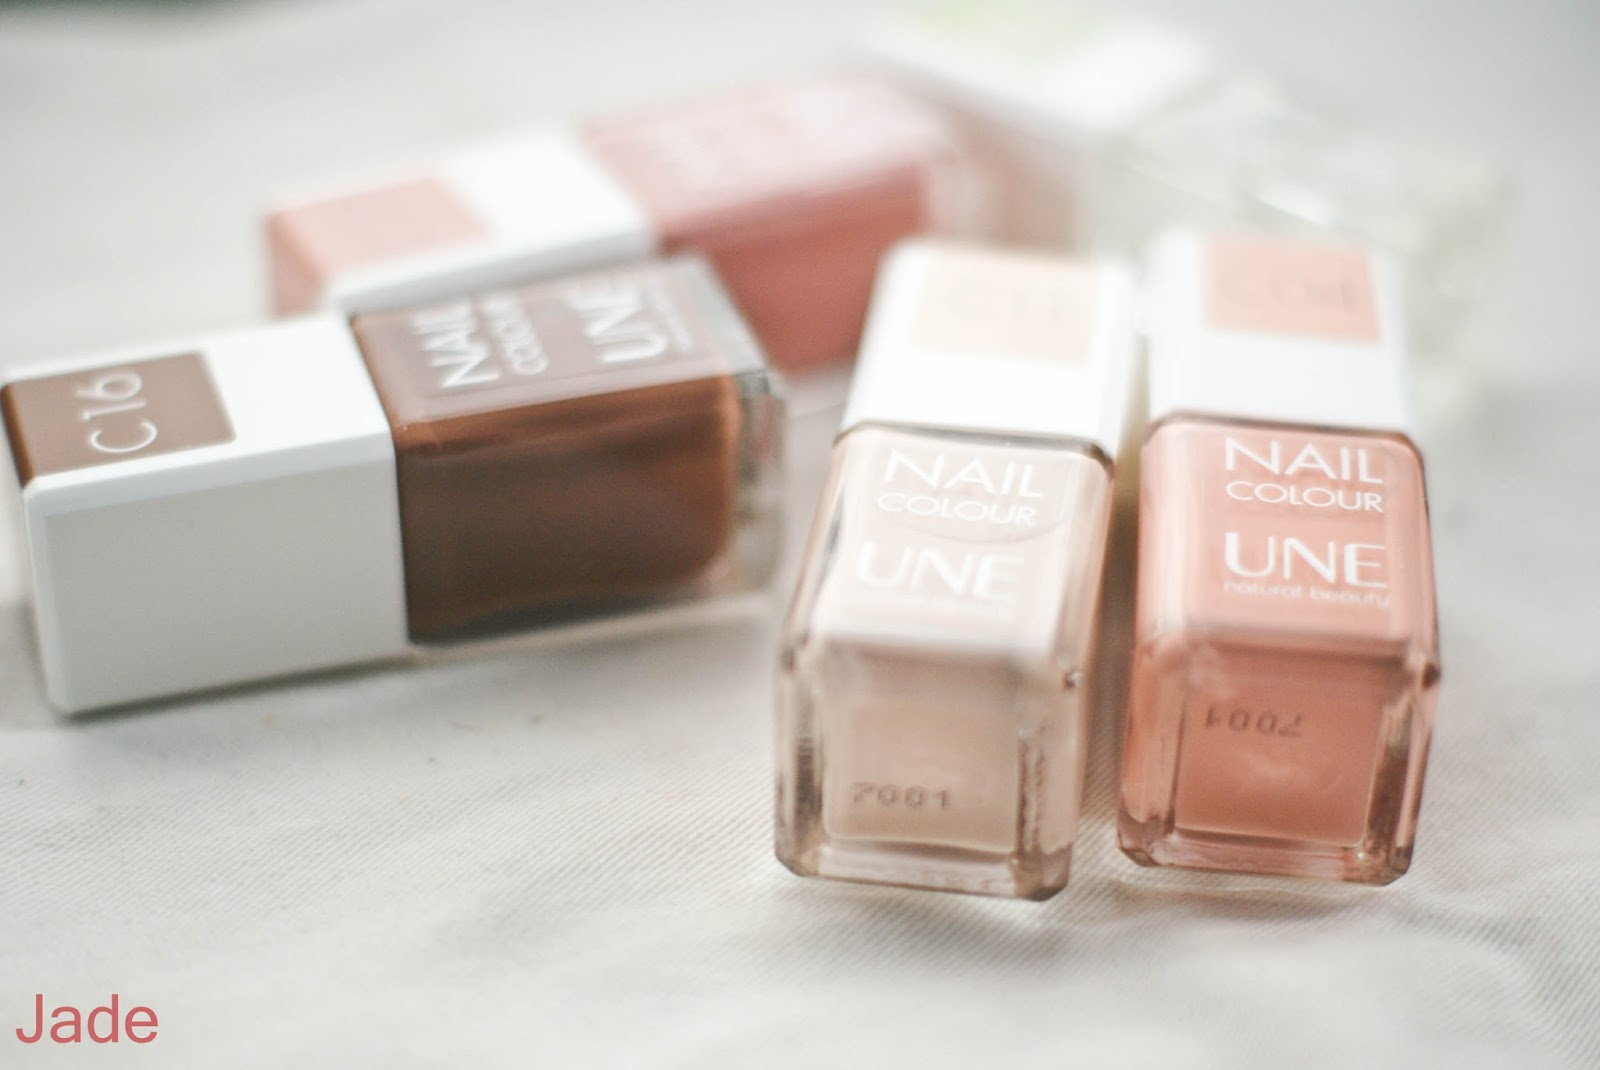 vernis naturel une beauty